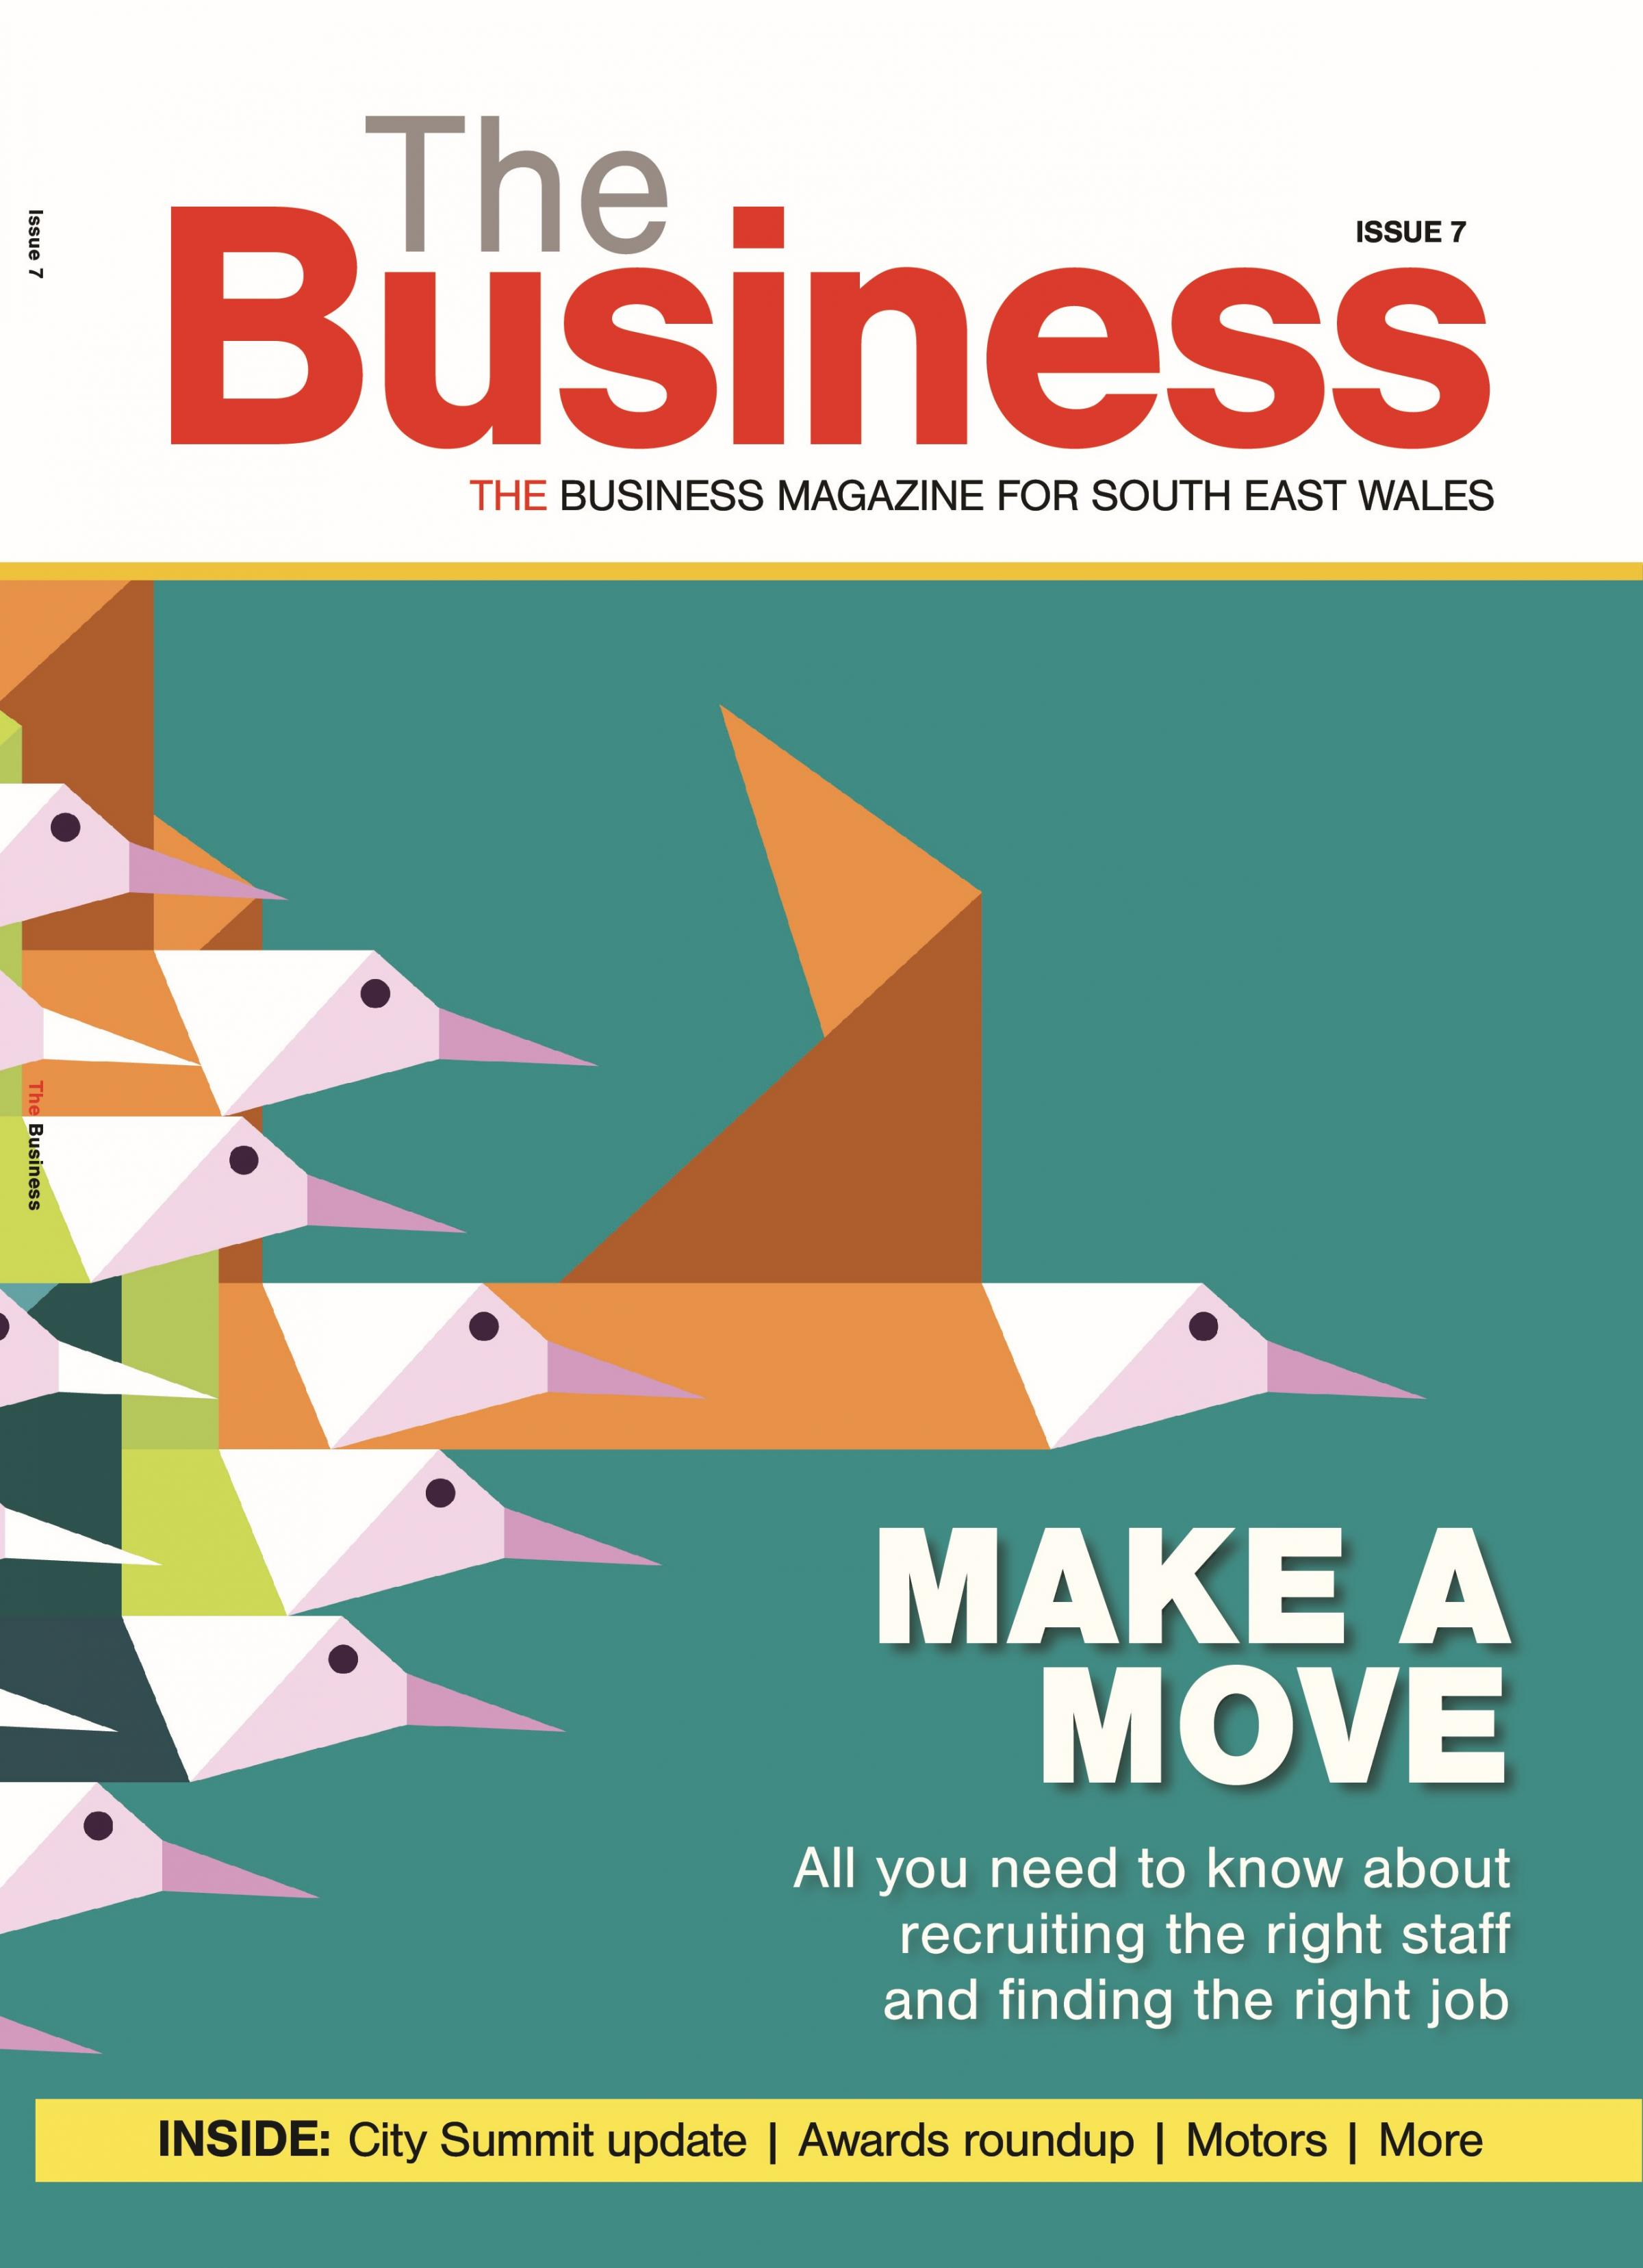 THE BUSINESS: Issue 7 - all about recruitment